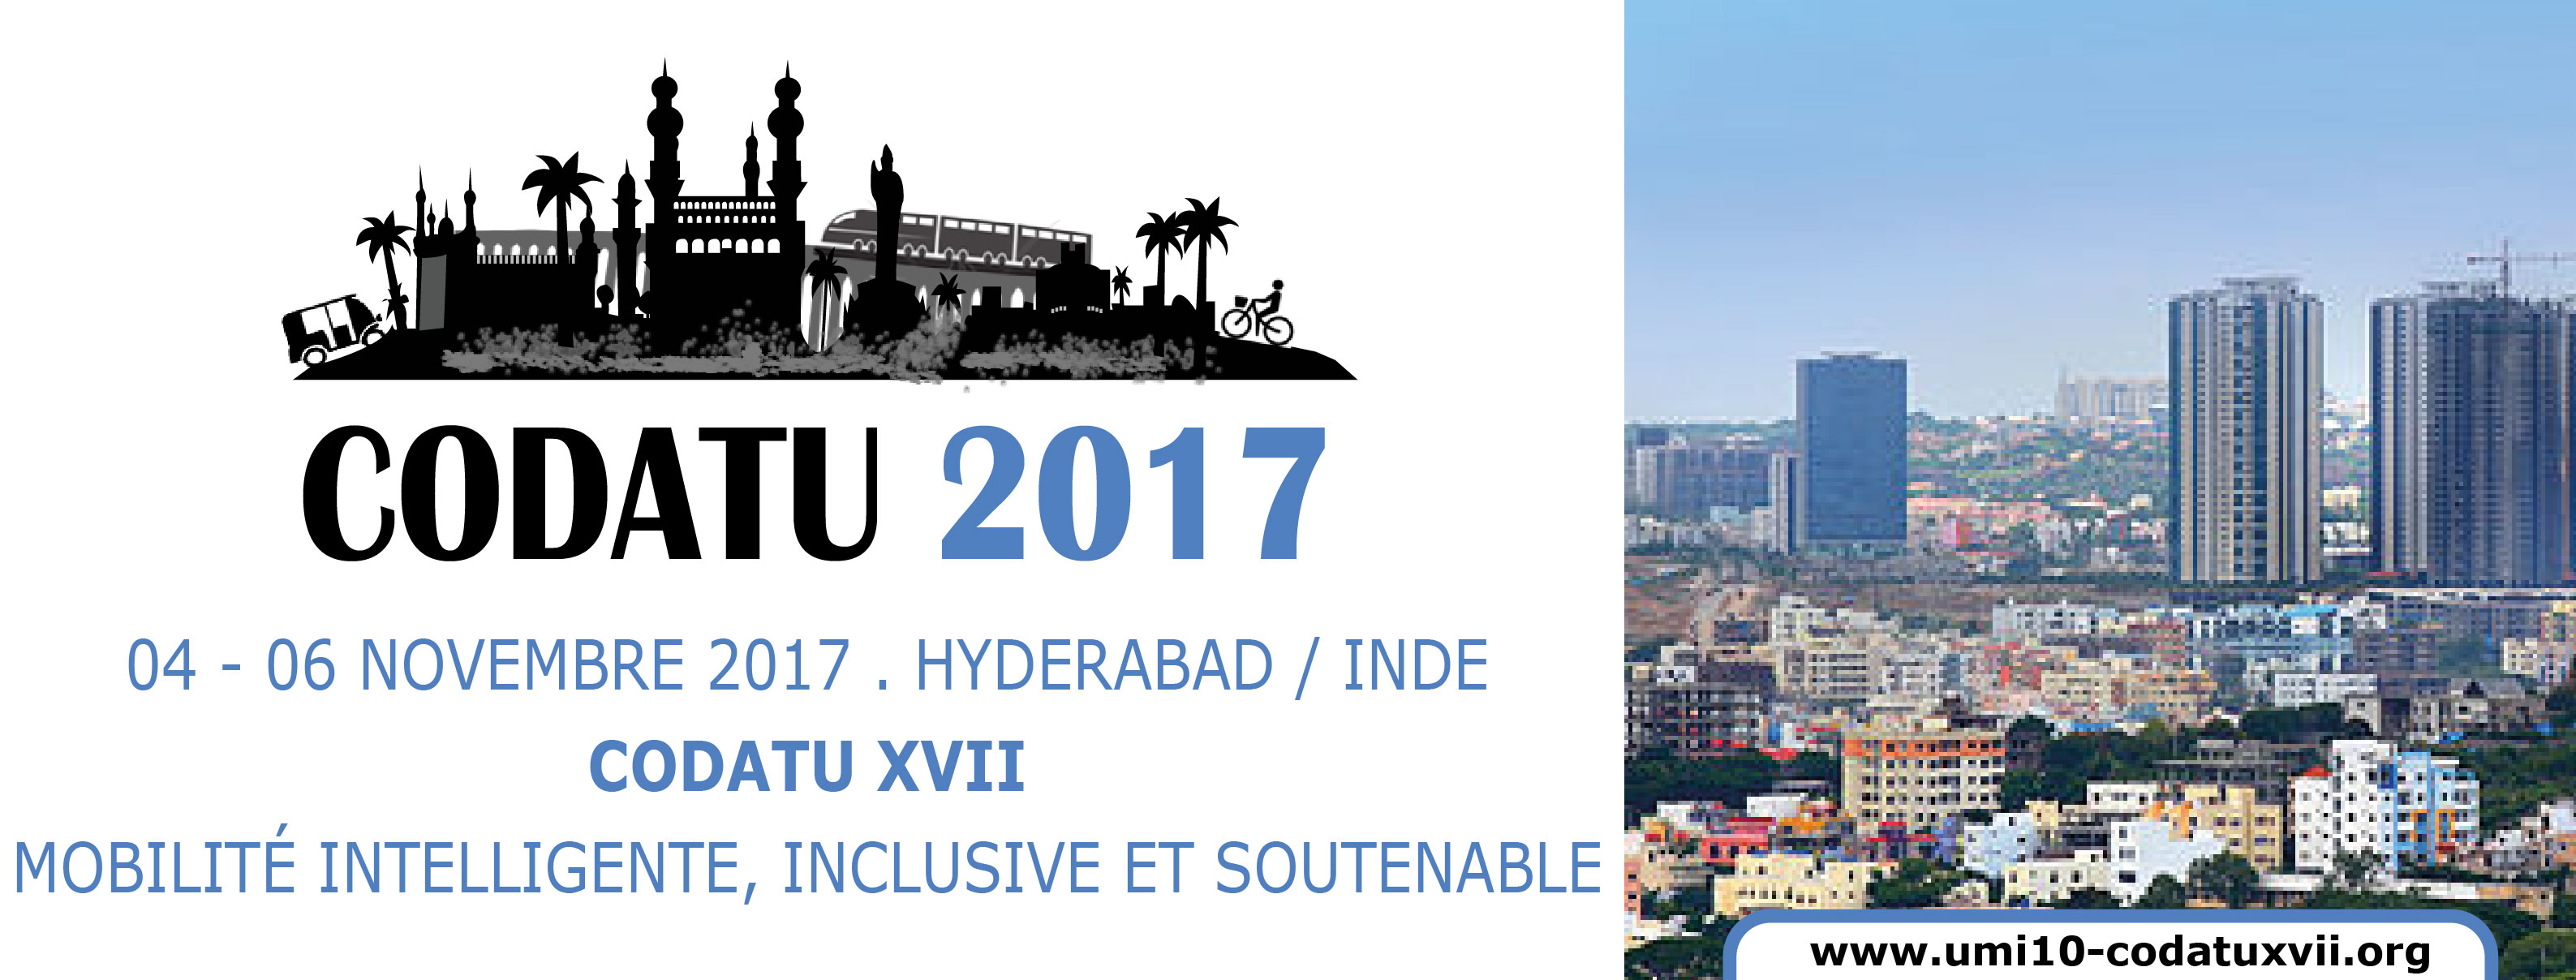 UMI-CODATU XVII Conference : Pedro Ortiz confirmed his participation as keynote speaker